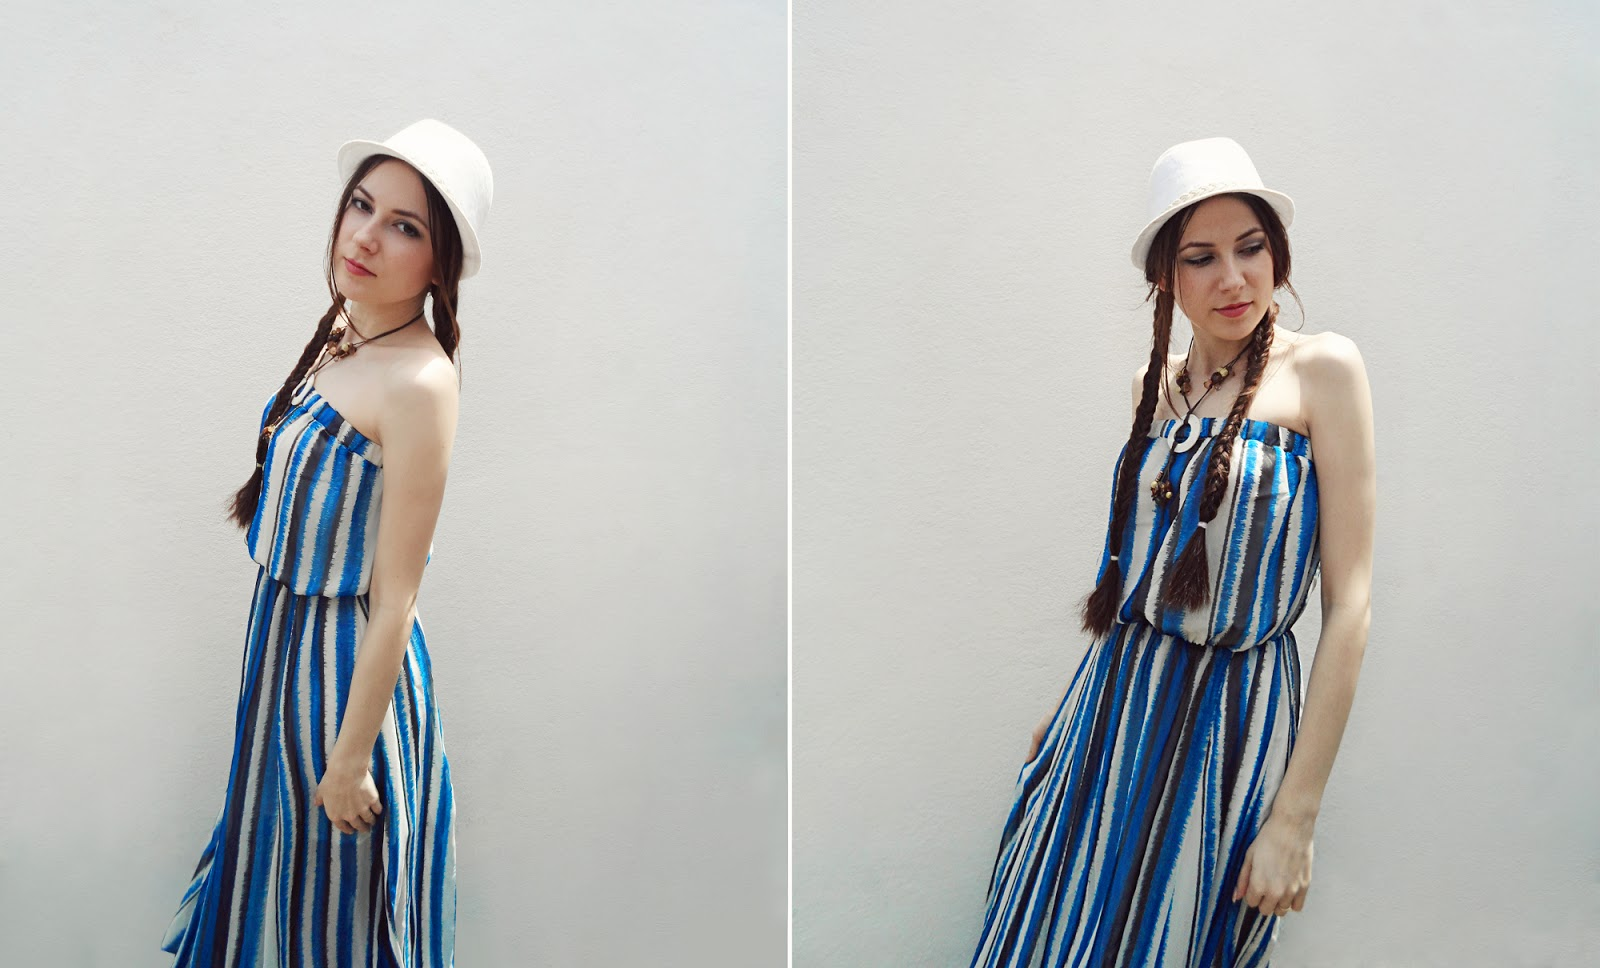 long maxi dress shopbop marine fashion trend outfit pictures white hat woman liz breygel pictures